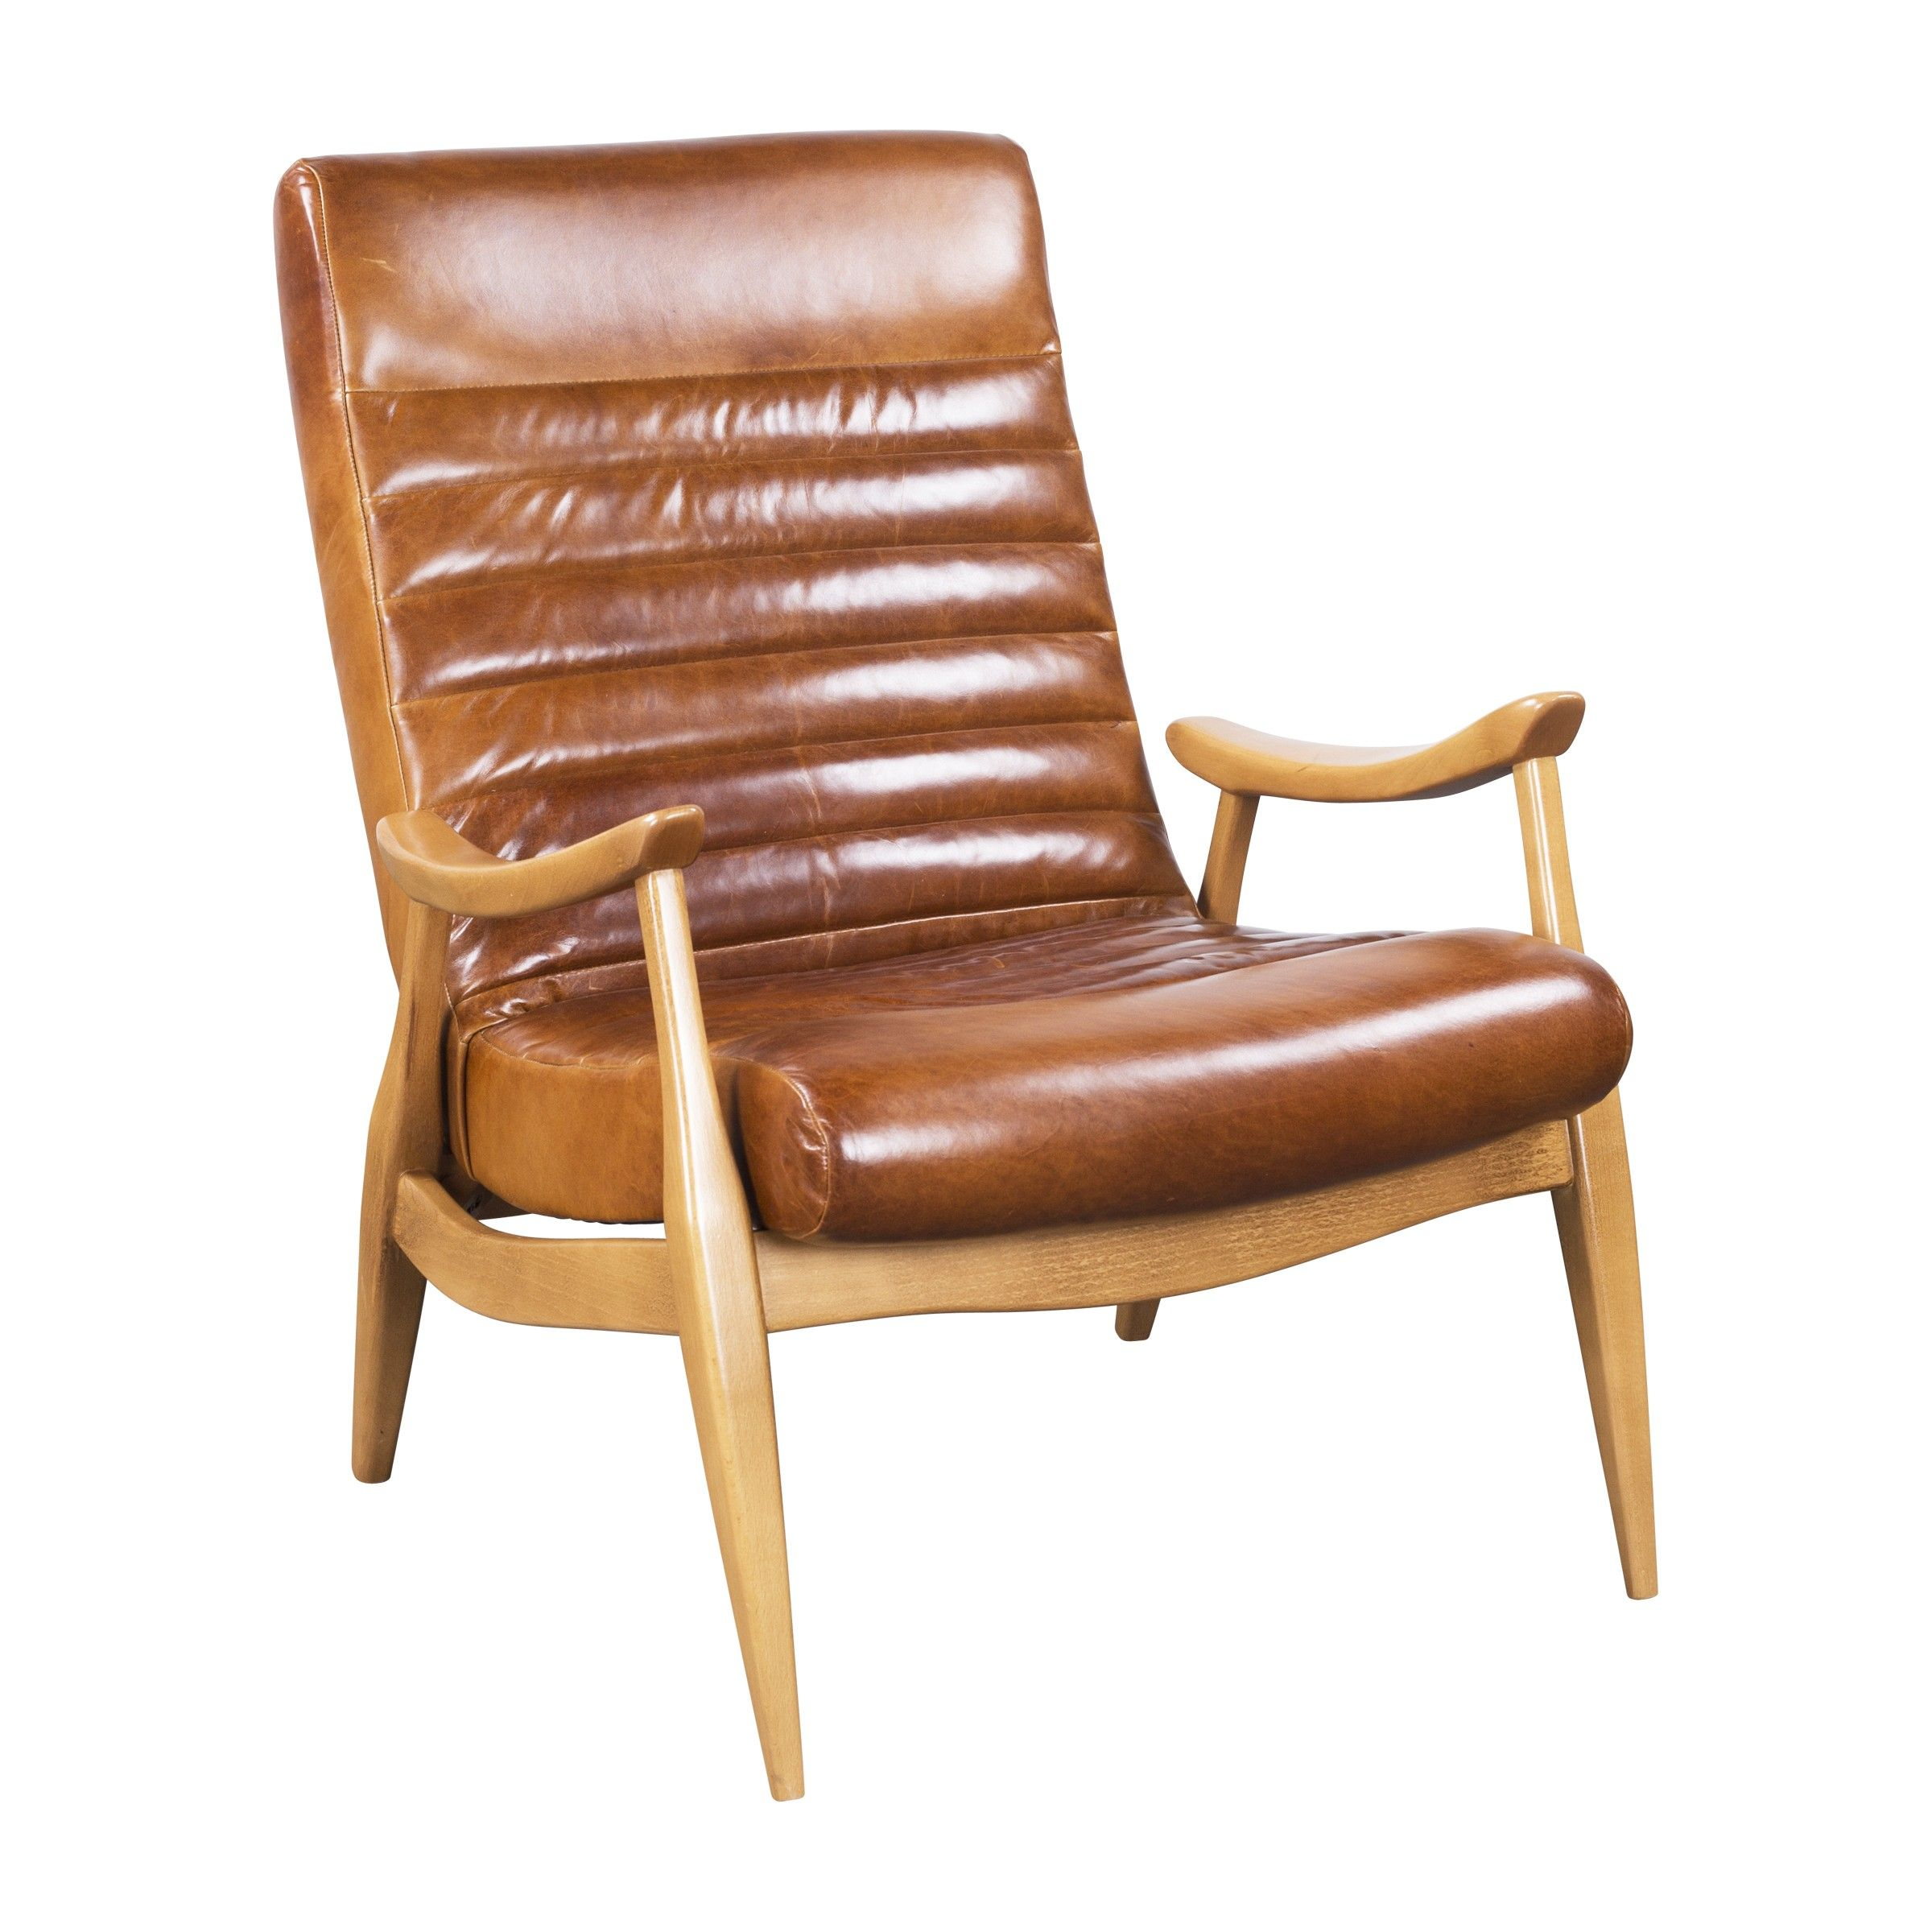 Best Hans Caramel Leather Chair By Dwell Studio Accent Chairs 640 x 480